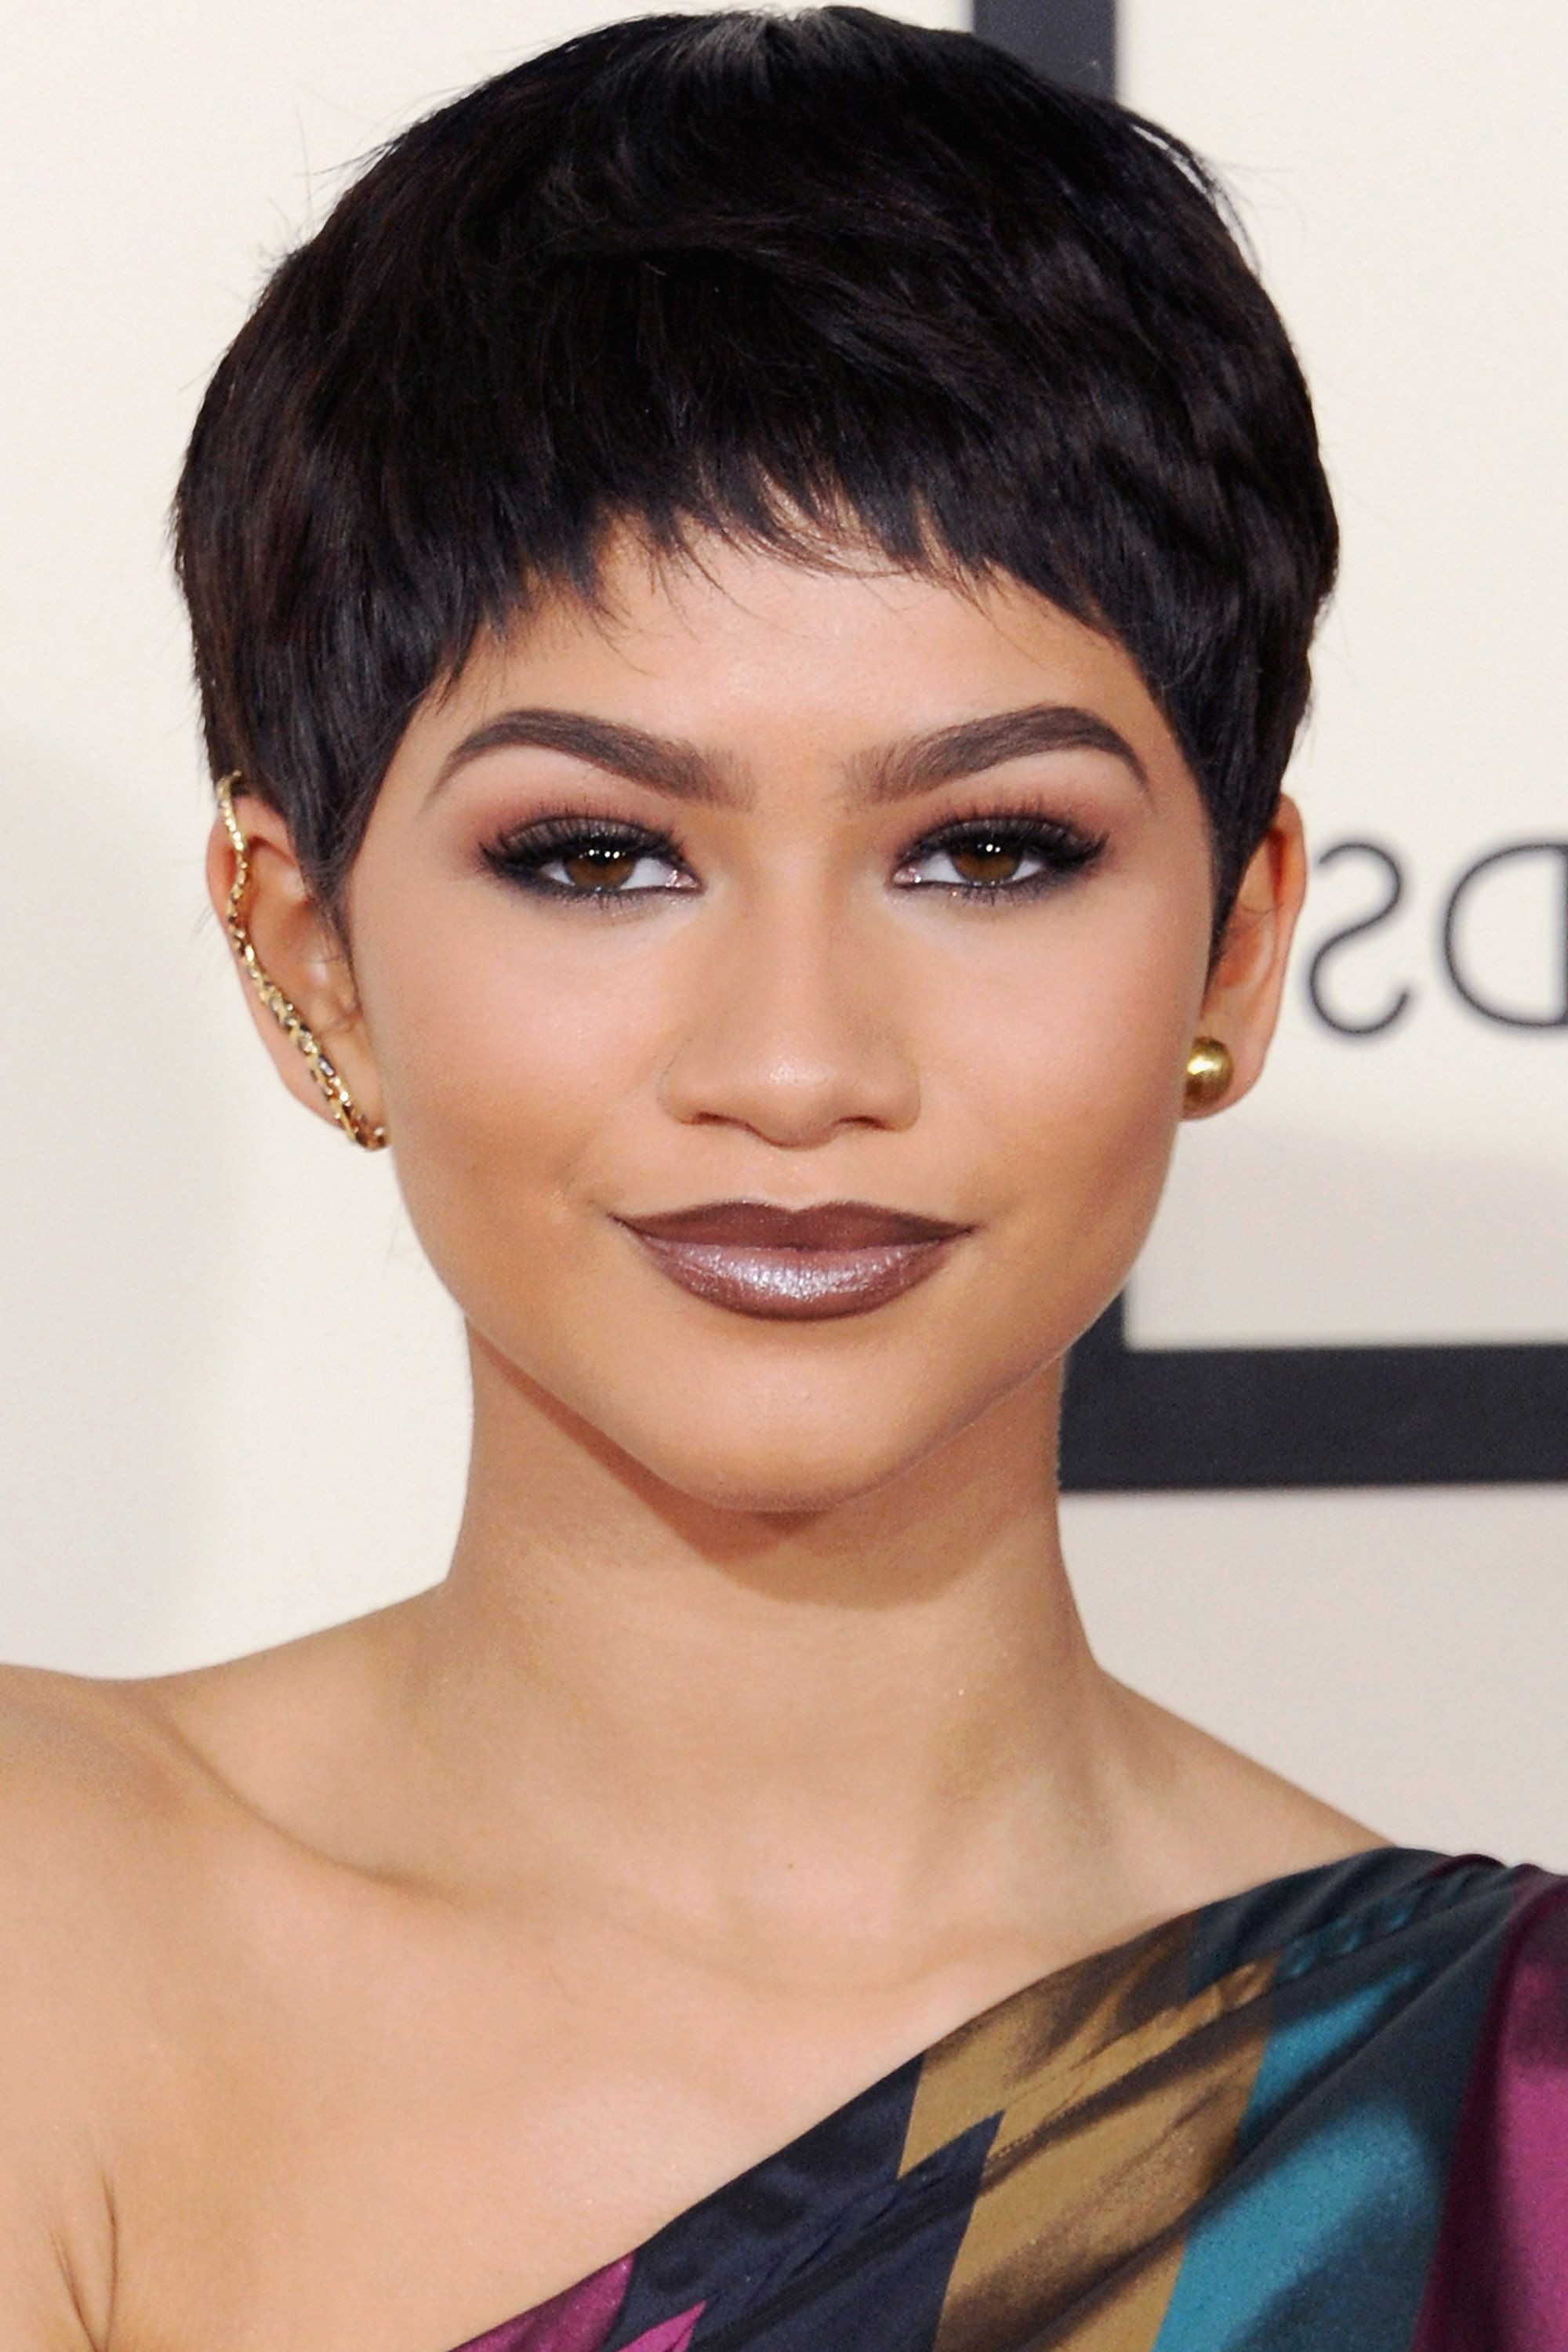 50+ Pixie Cuts We Love For 2018 – Short Pixie Hairstyles From With Summer Short Haircuts (View 7 of 25)